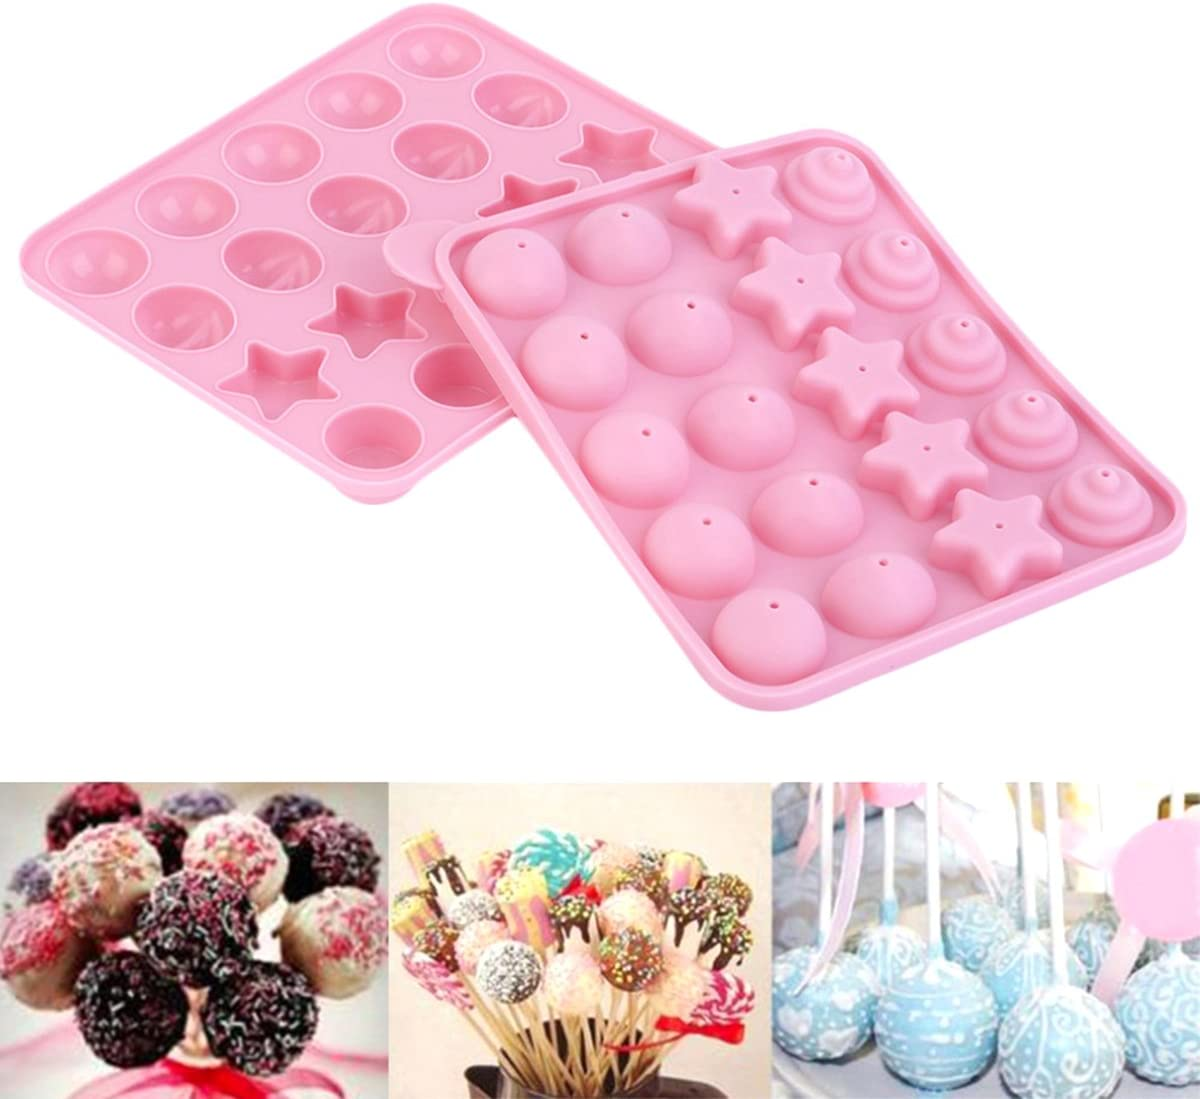 OUNONA Cake Pop Mold Tampa Mall Silicone for Lollipop Hard Candy Party and Super sale period limited